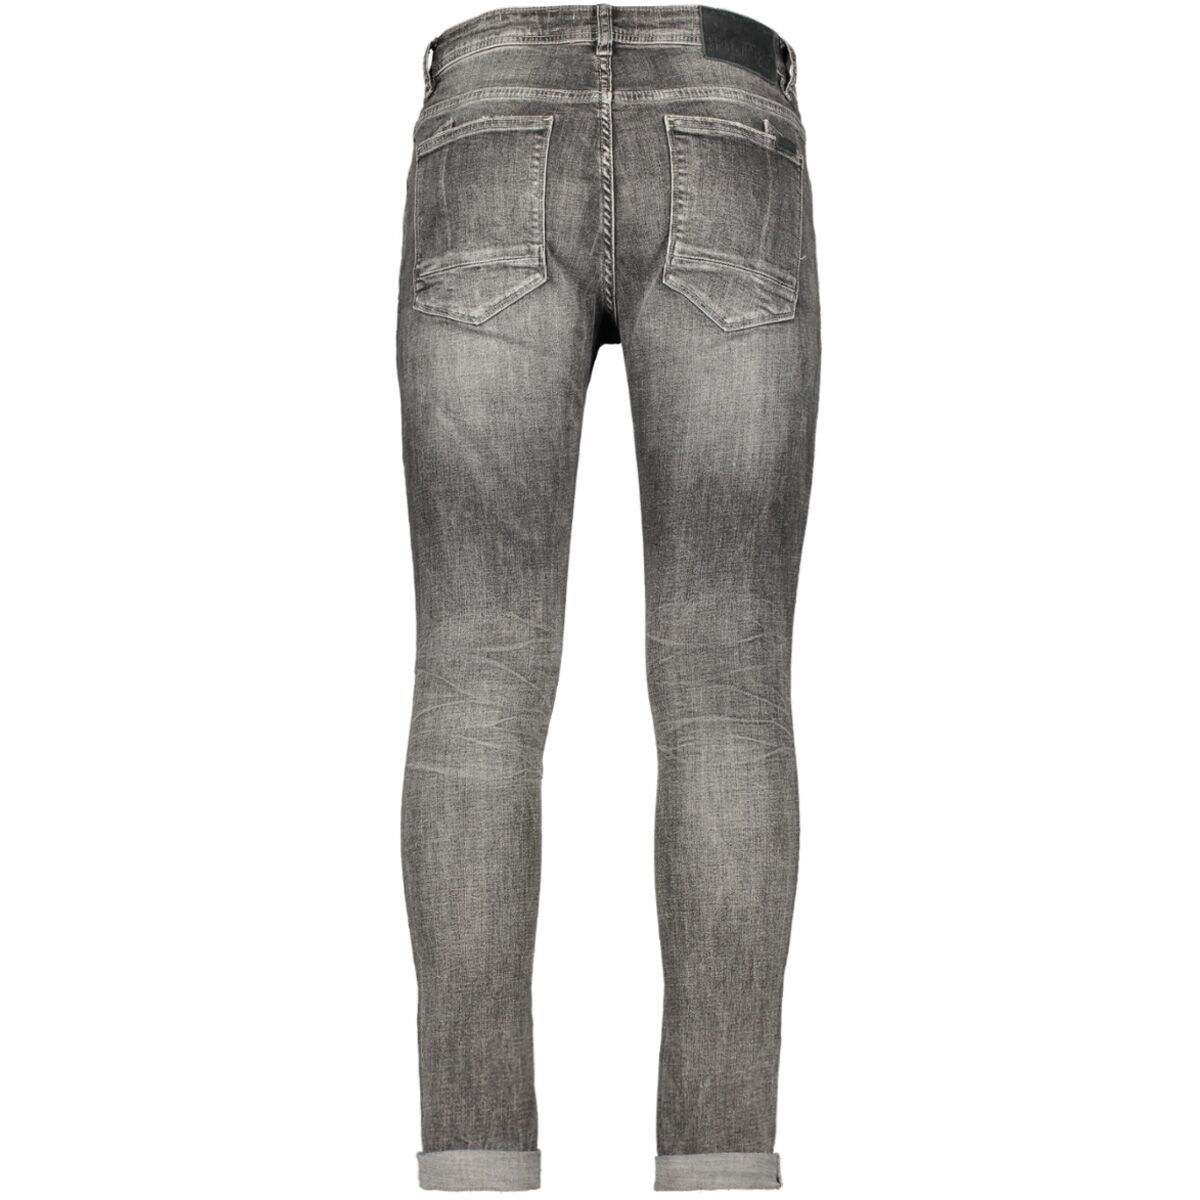 jagger noos 3 circle of trust jeans 2158 grey rocks